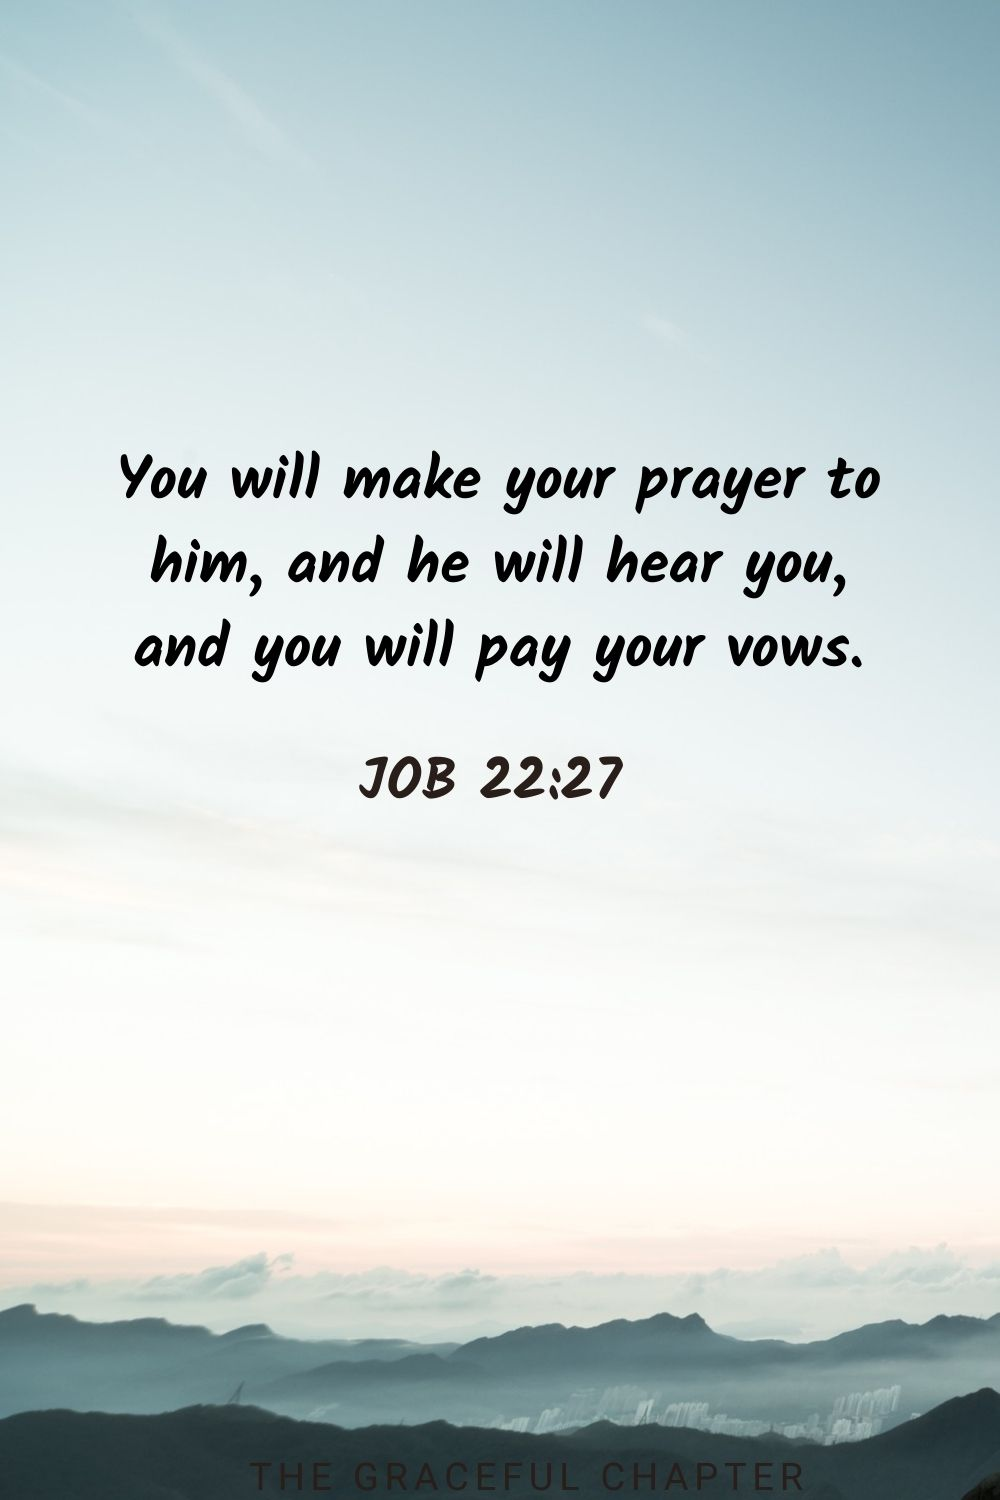 You will make your prayer to him, and he will hear you, and you will pay your vows. Job 22:27